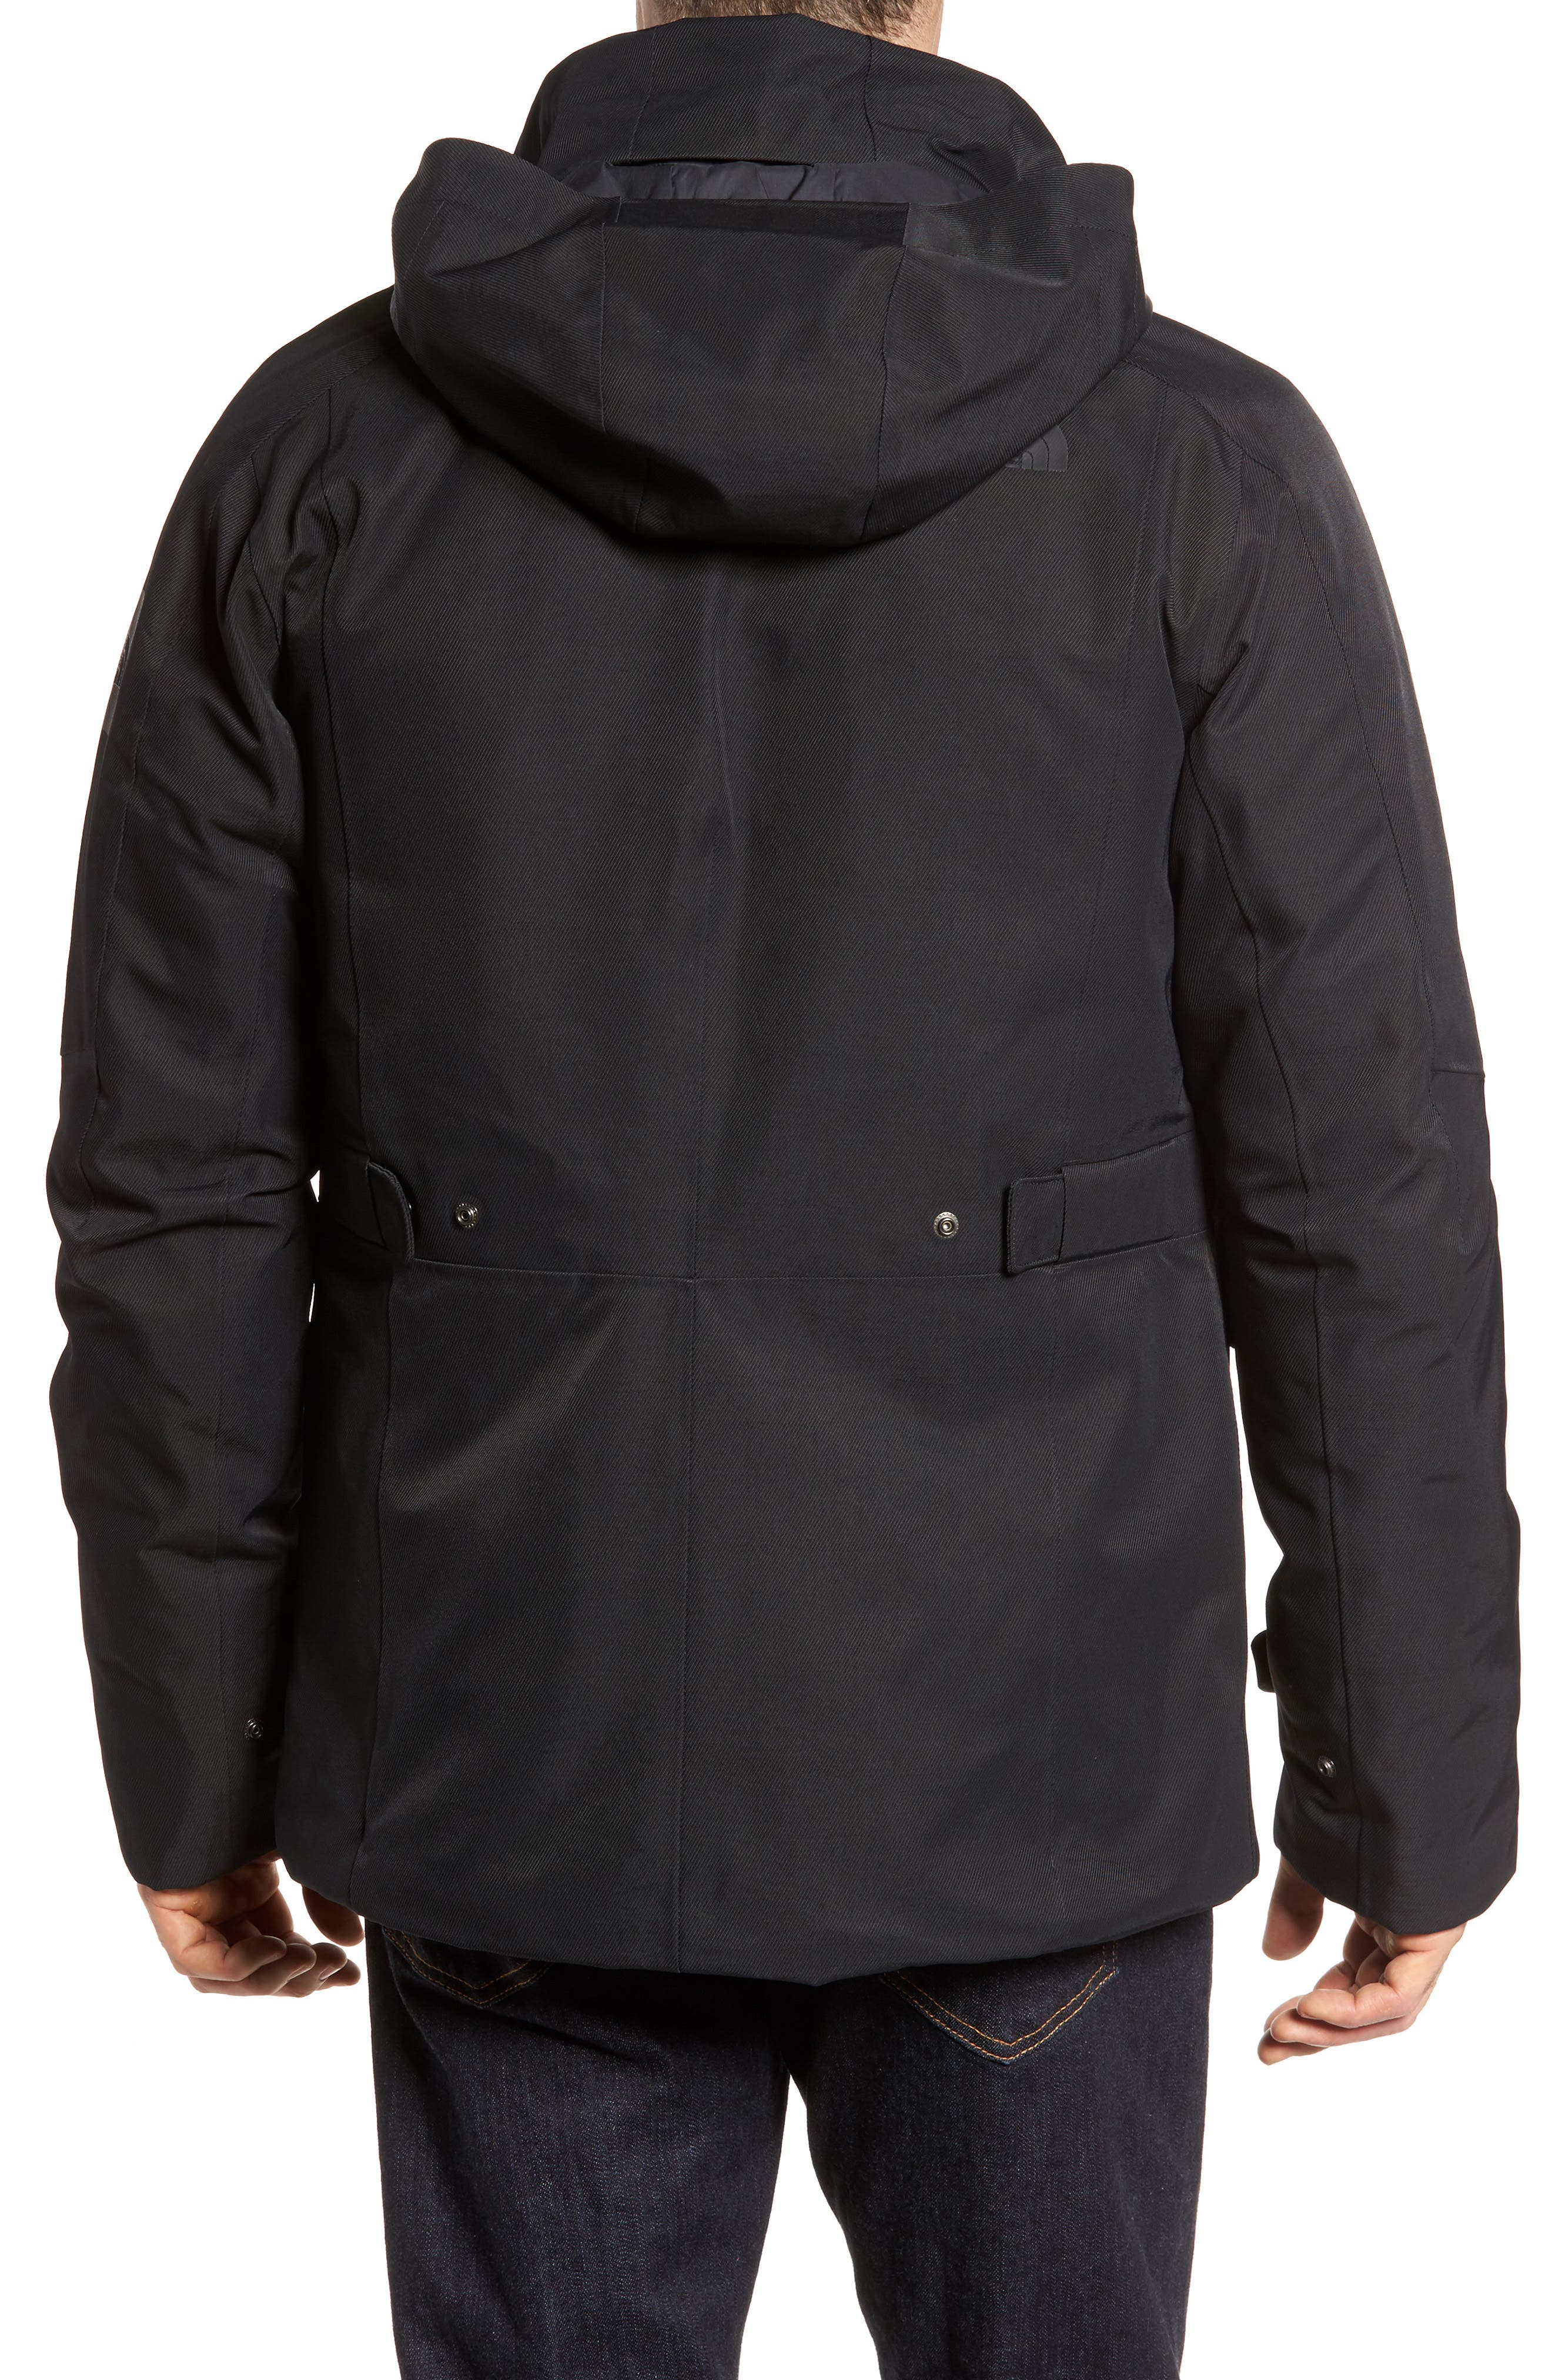 Cryos Waterproof Gore-Tex<sup>®</sup> PrimaLoft<sup>®</sup> Gold Insulated Jacket,                             Alternate thumbnail 2, color,